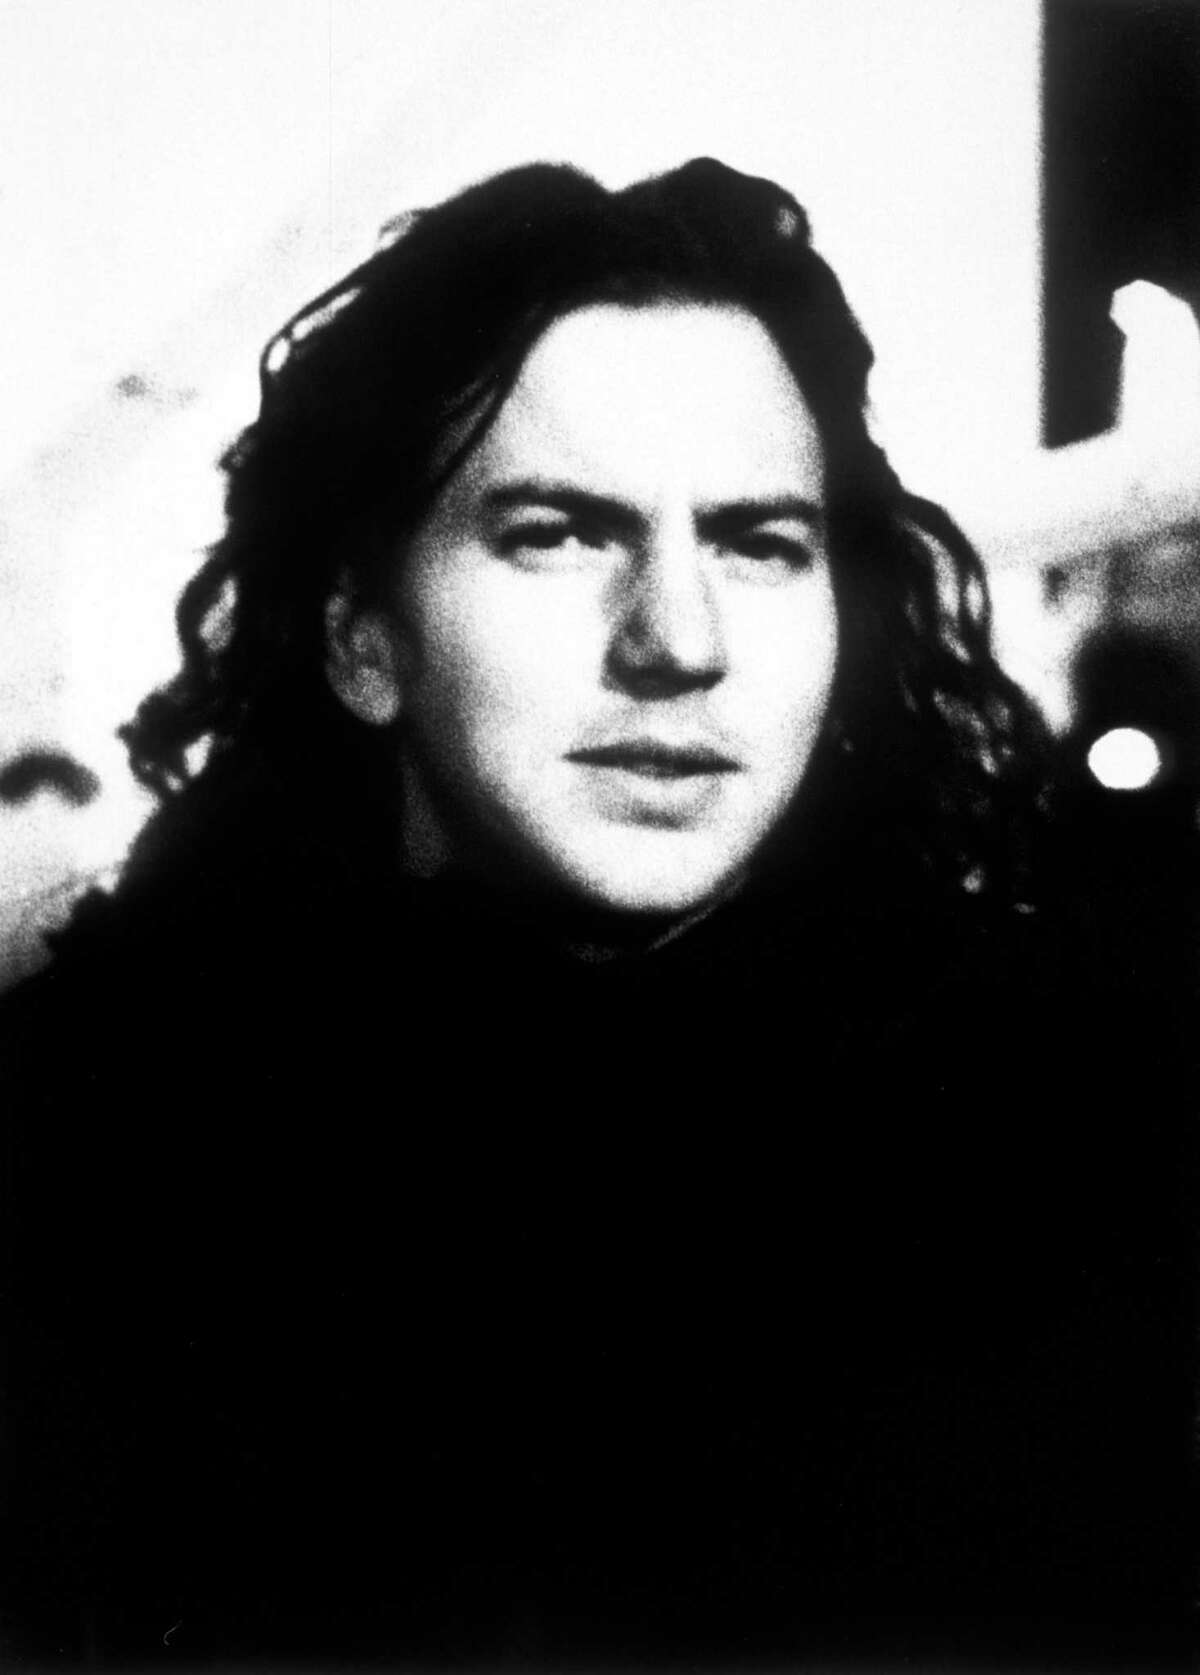 1990: Vedder, pictured as all this started.